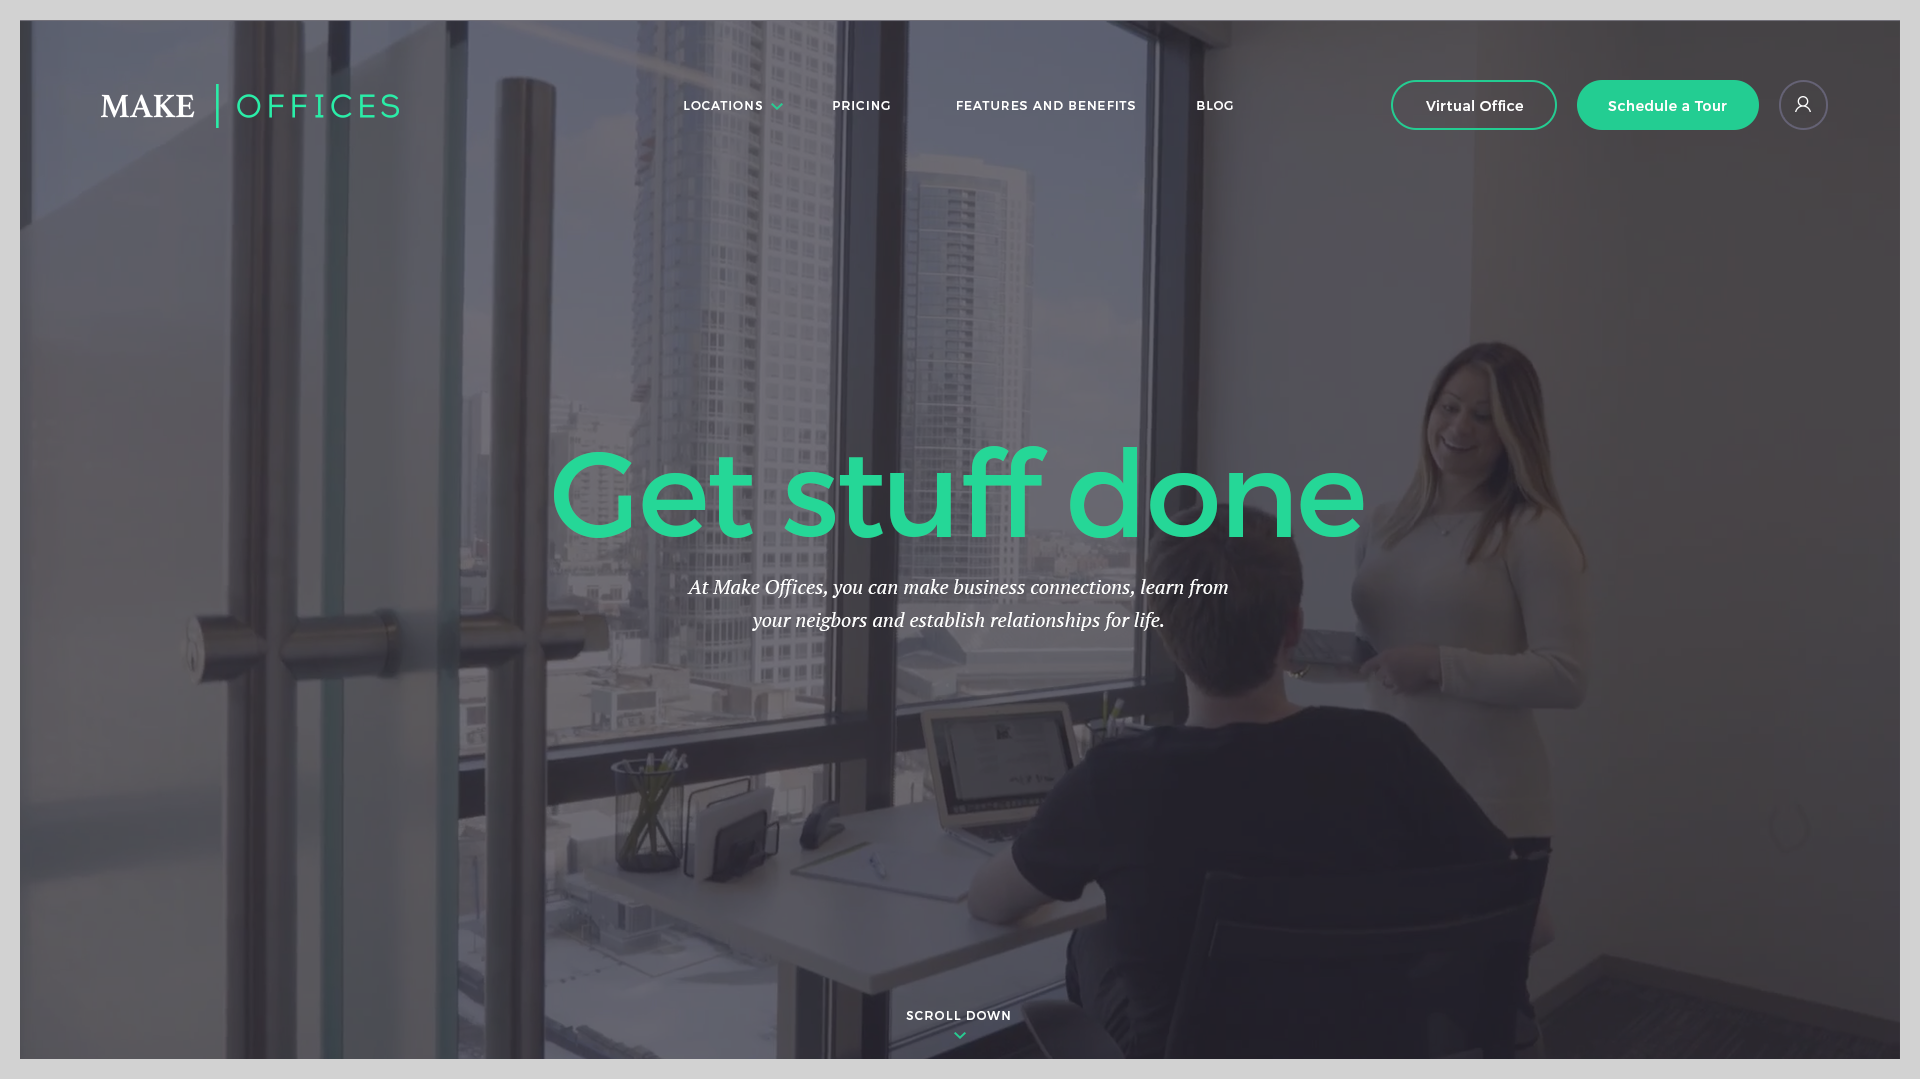 Make offices Website Design Preview